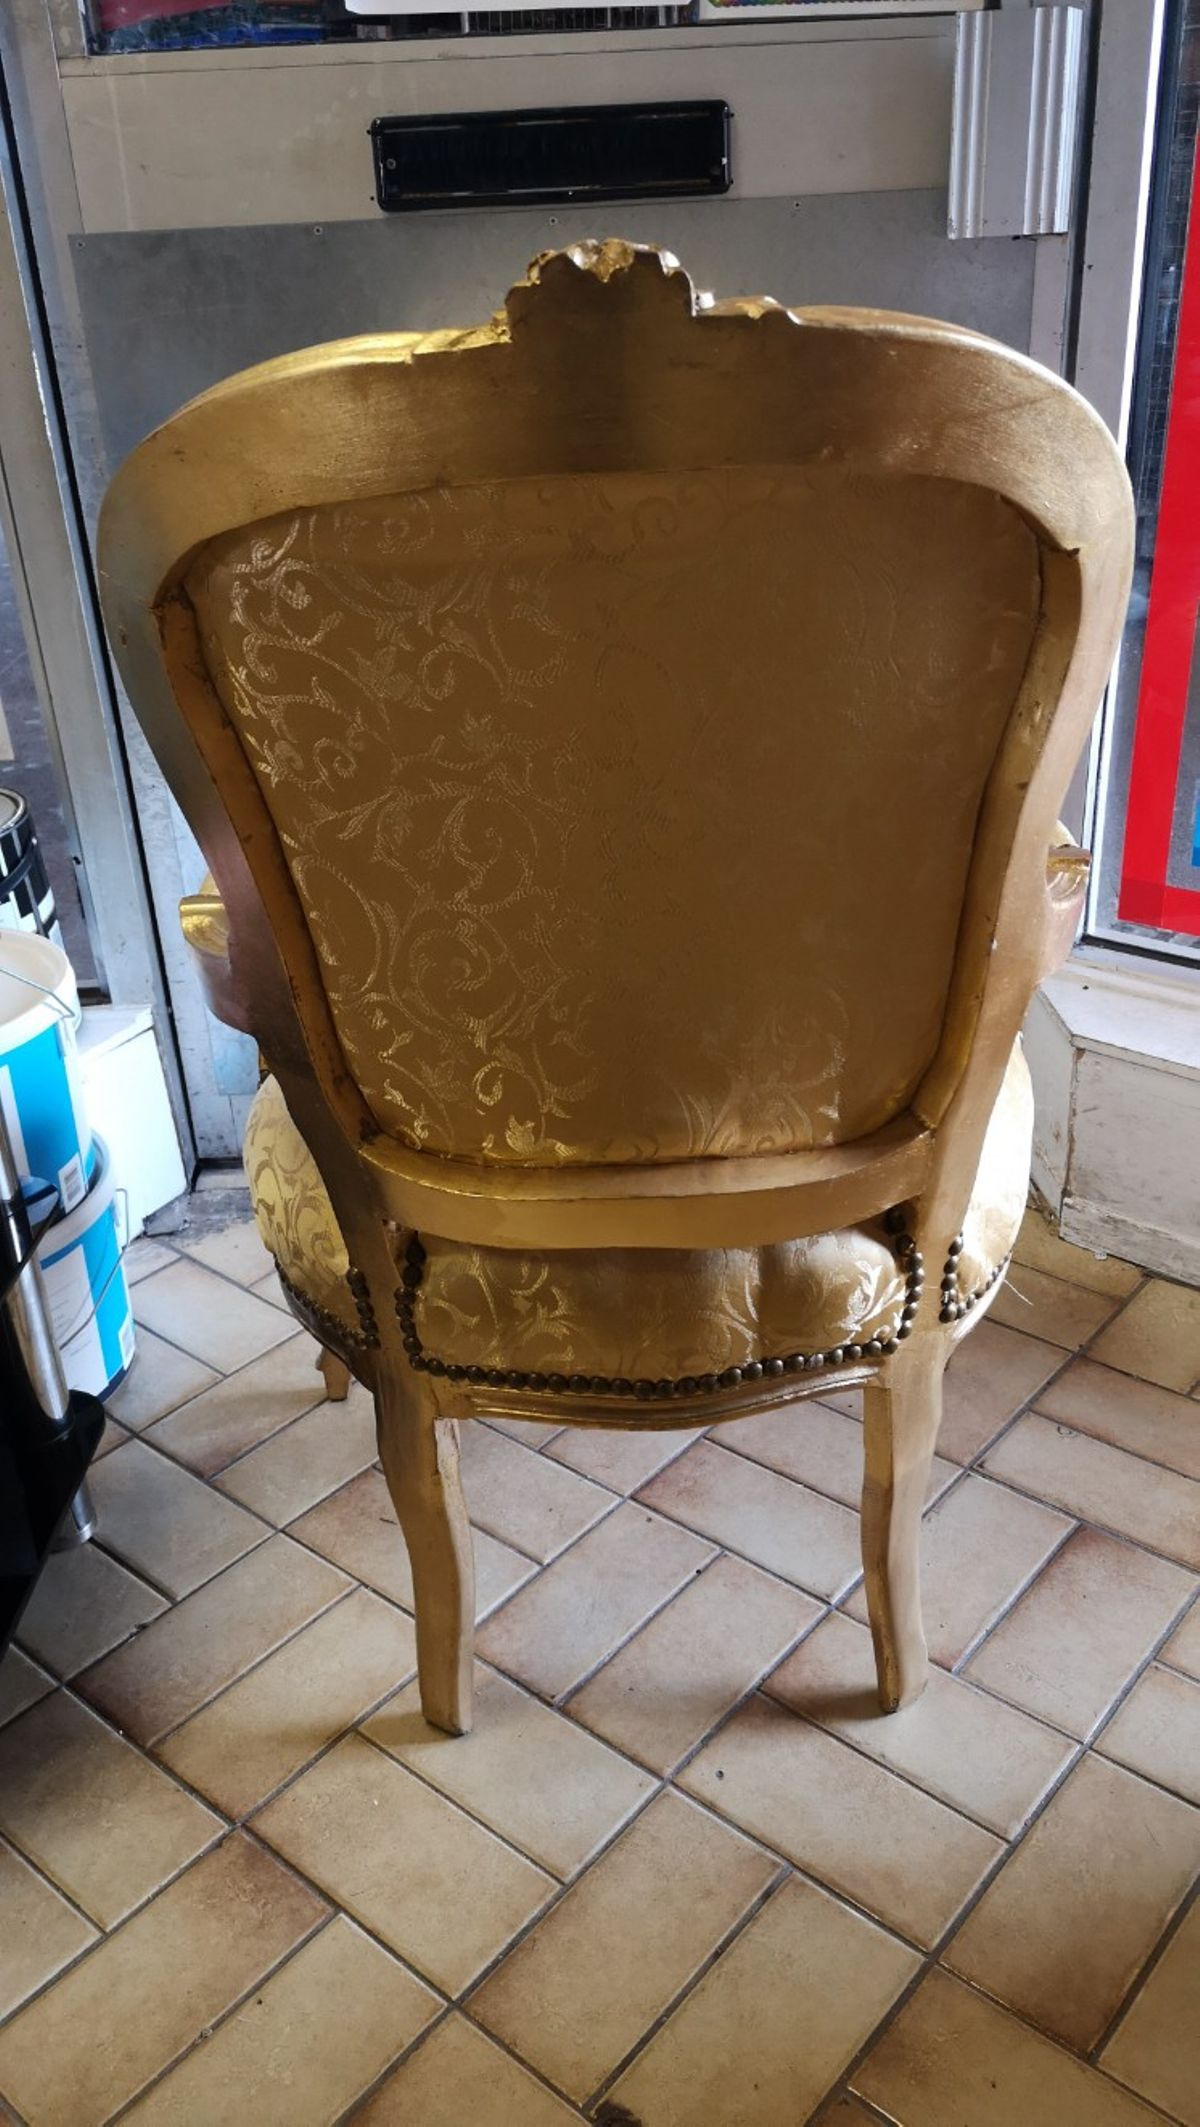 Antique French Reproduction Furniture Beautiful French Style Reproduction Chairs In M24 Rochdale Für £ 50 00